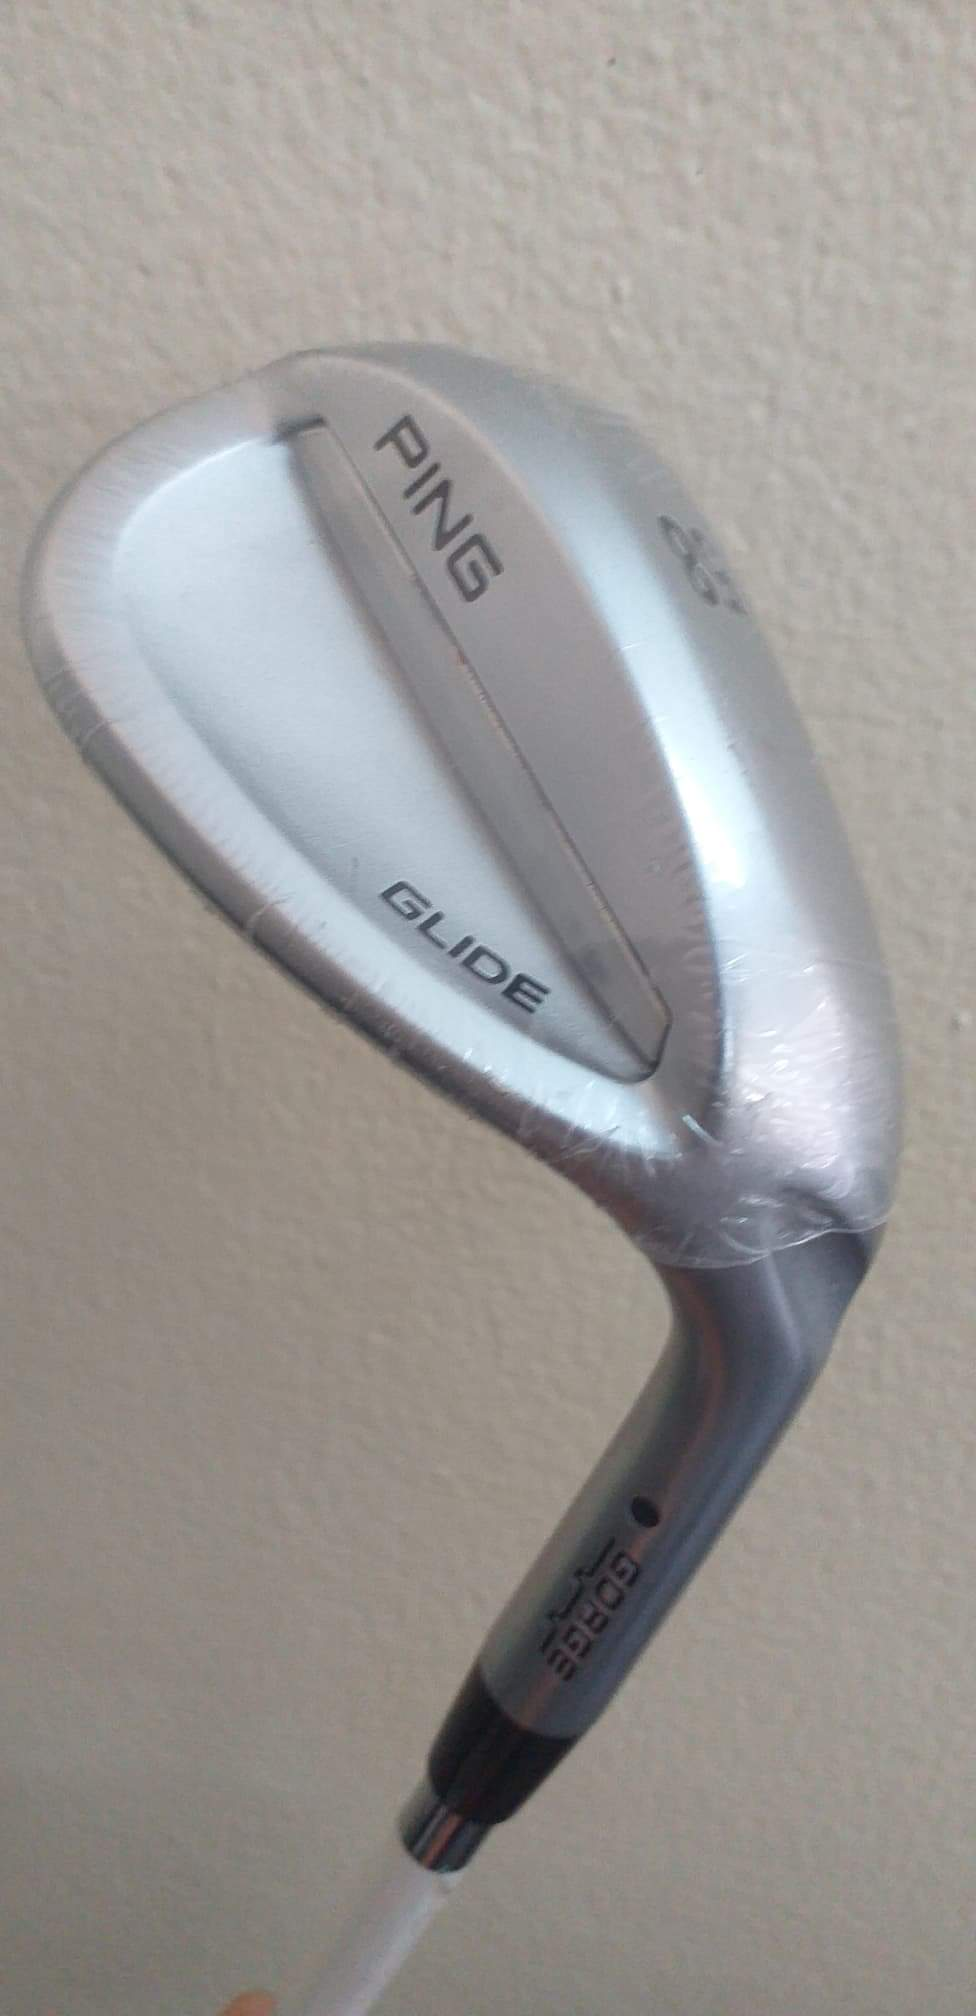 Wedge #PING Loft 58°/SS(12)